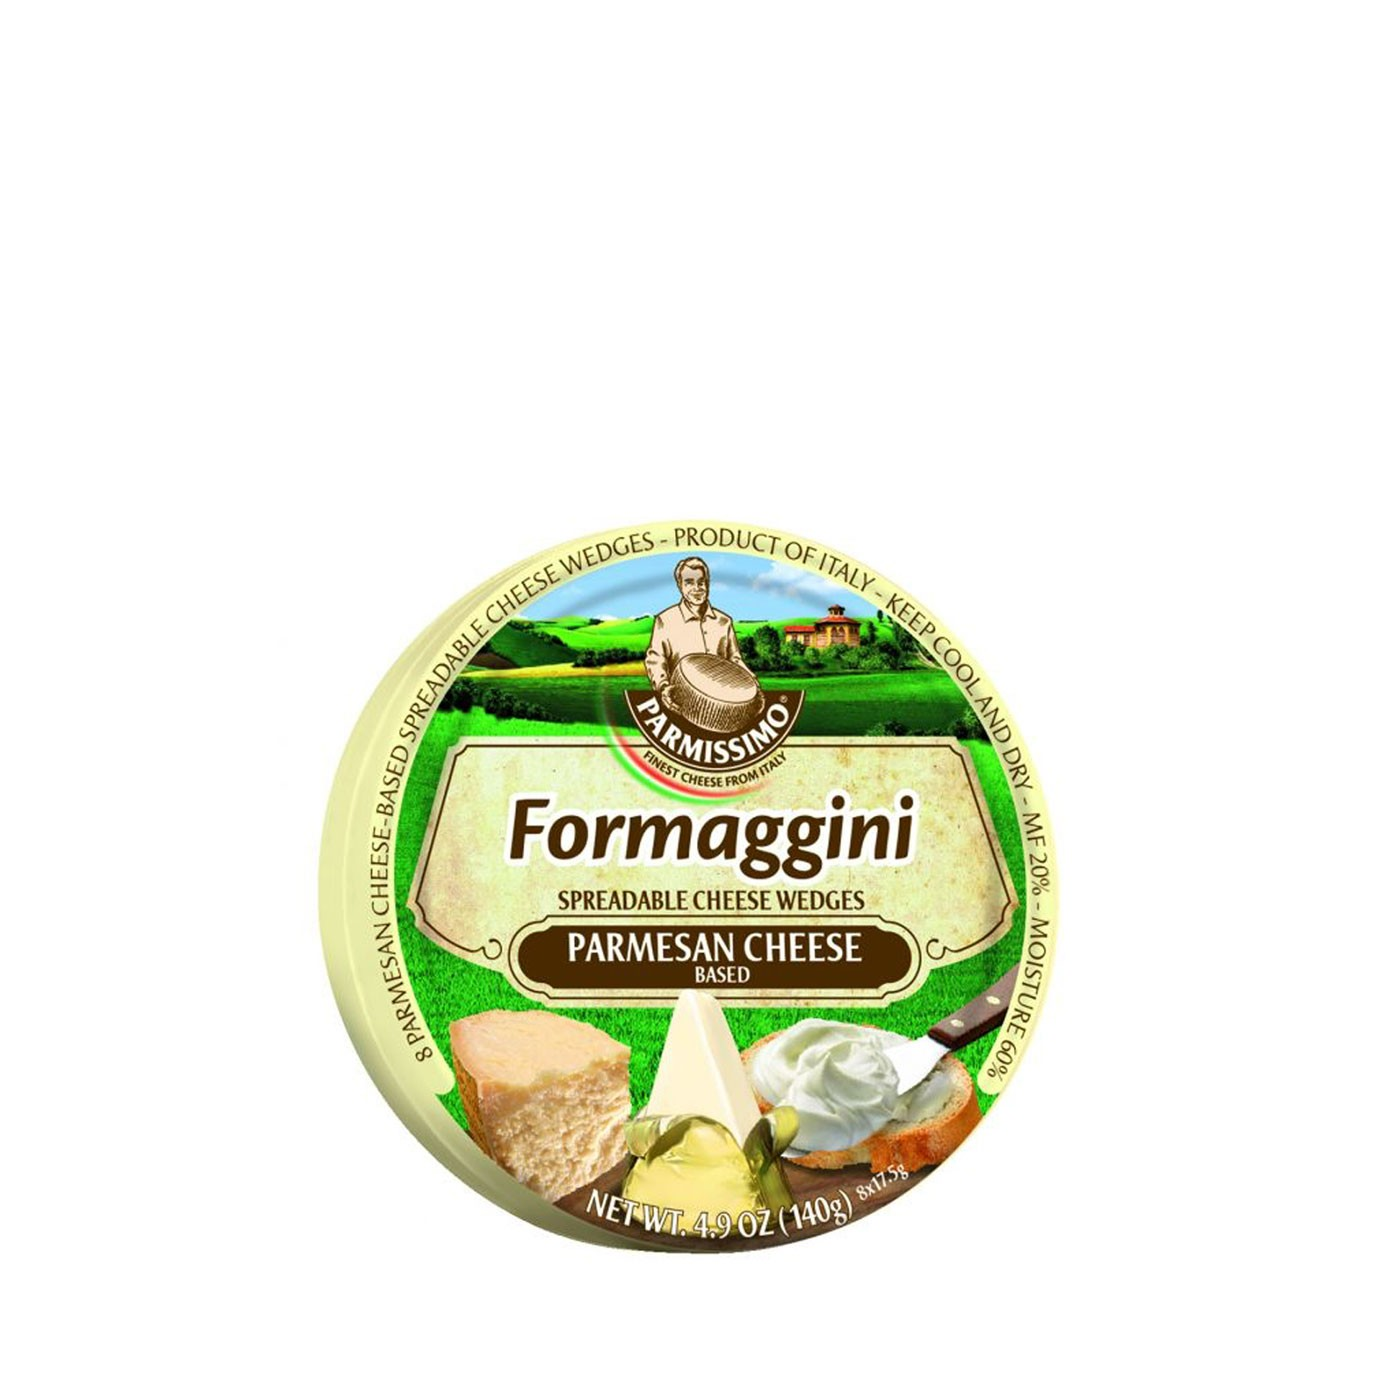 Spreadable Parmesan Cheese Wedges 4.9oz